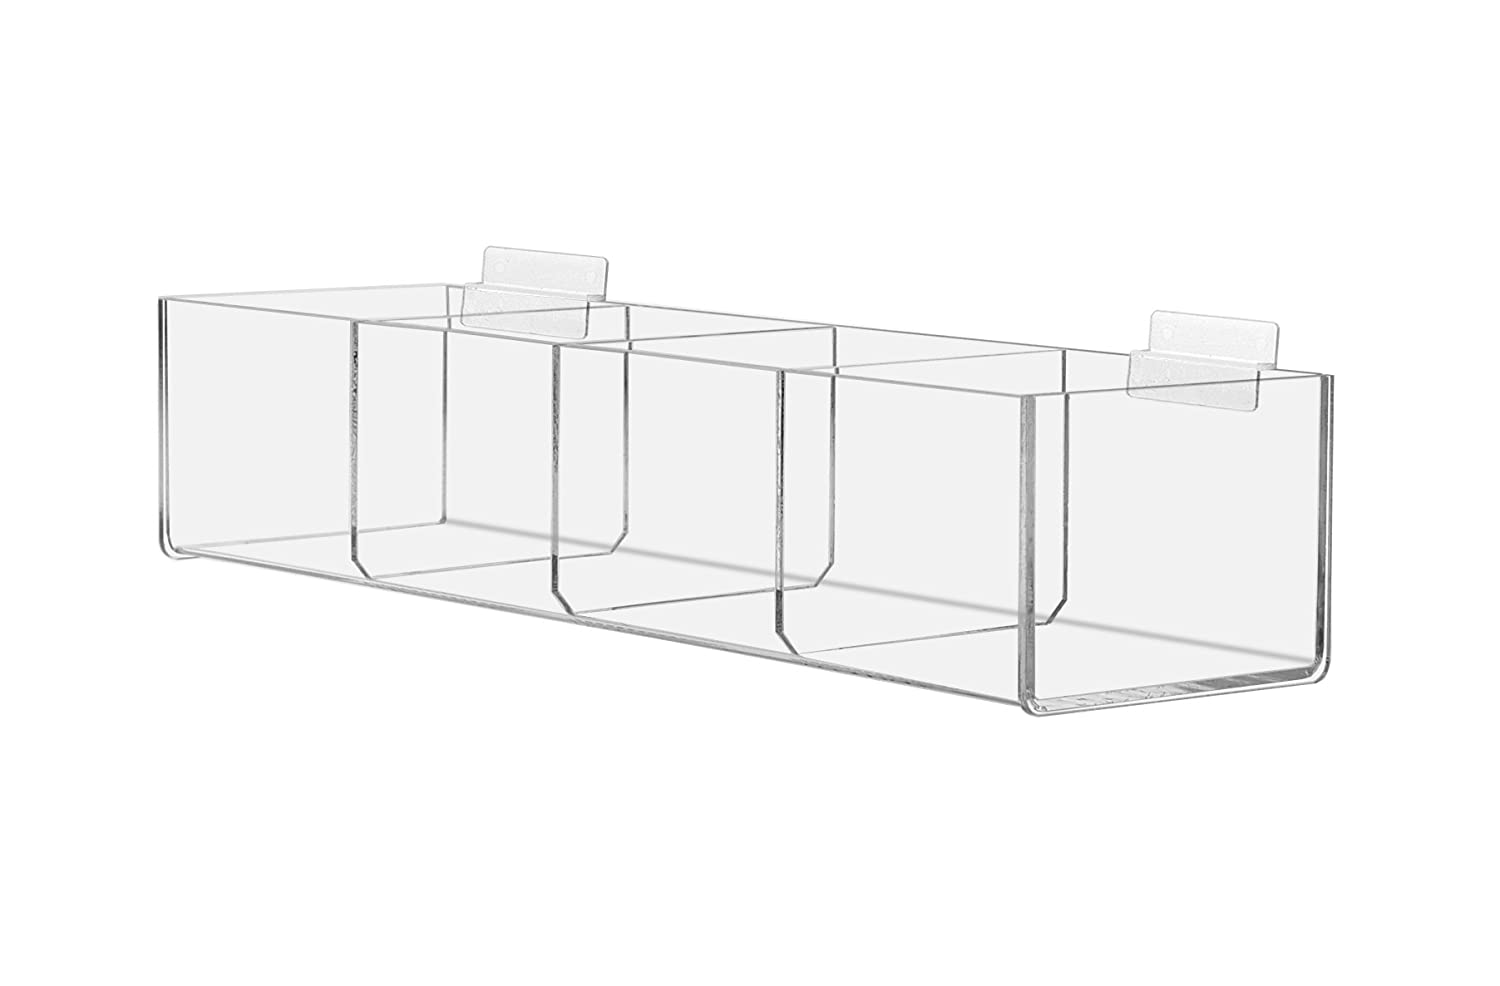 Marketing Holders Slat-wall Compartment Bin Clear Organization Storage Display 4 Bin Compartment Qty 4 4BIN-CLR-4